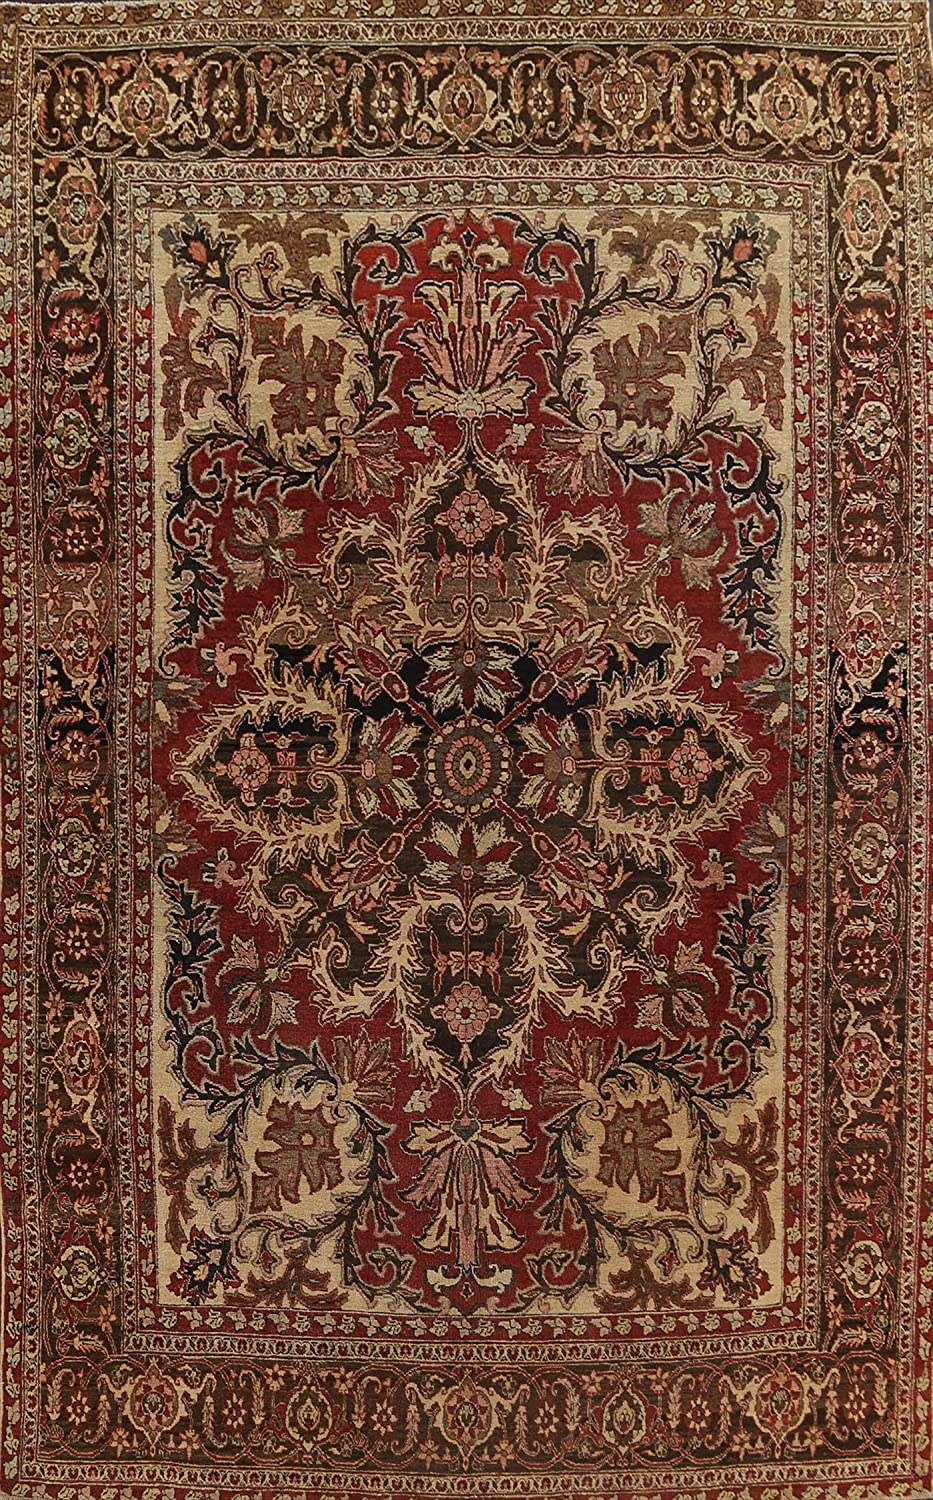 Antique Vegetable Dye Red Floral Rug Area Heriz Free shipping Lowest price challenge New Oriental Serapi